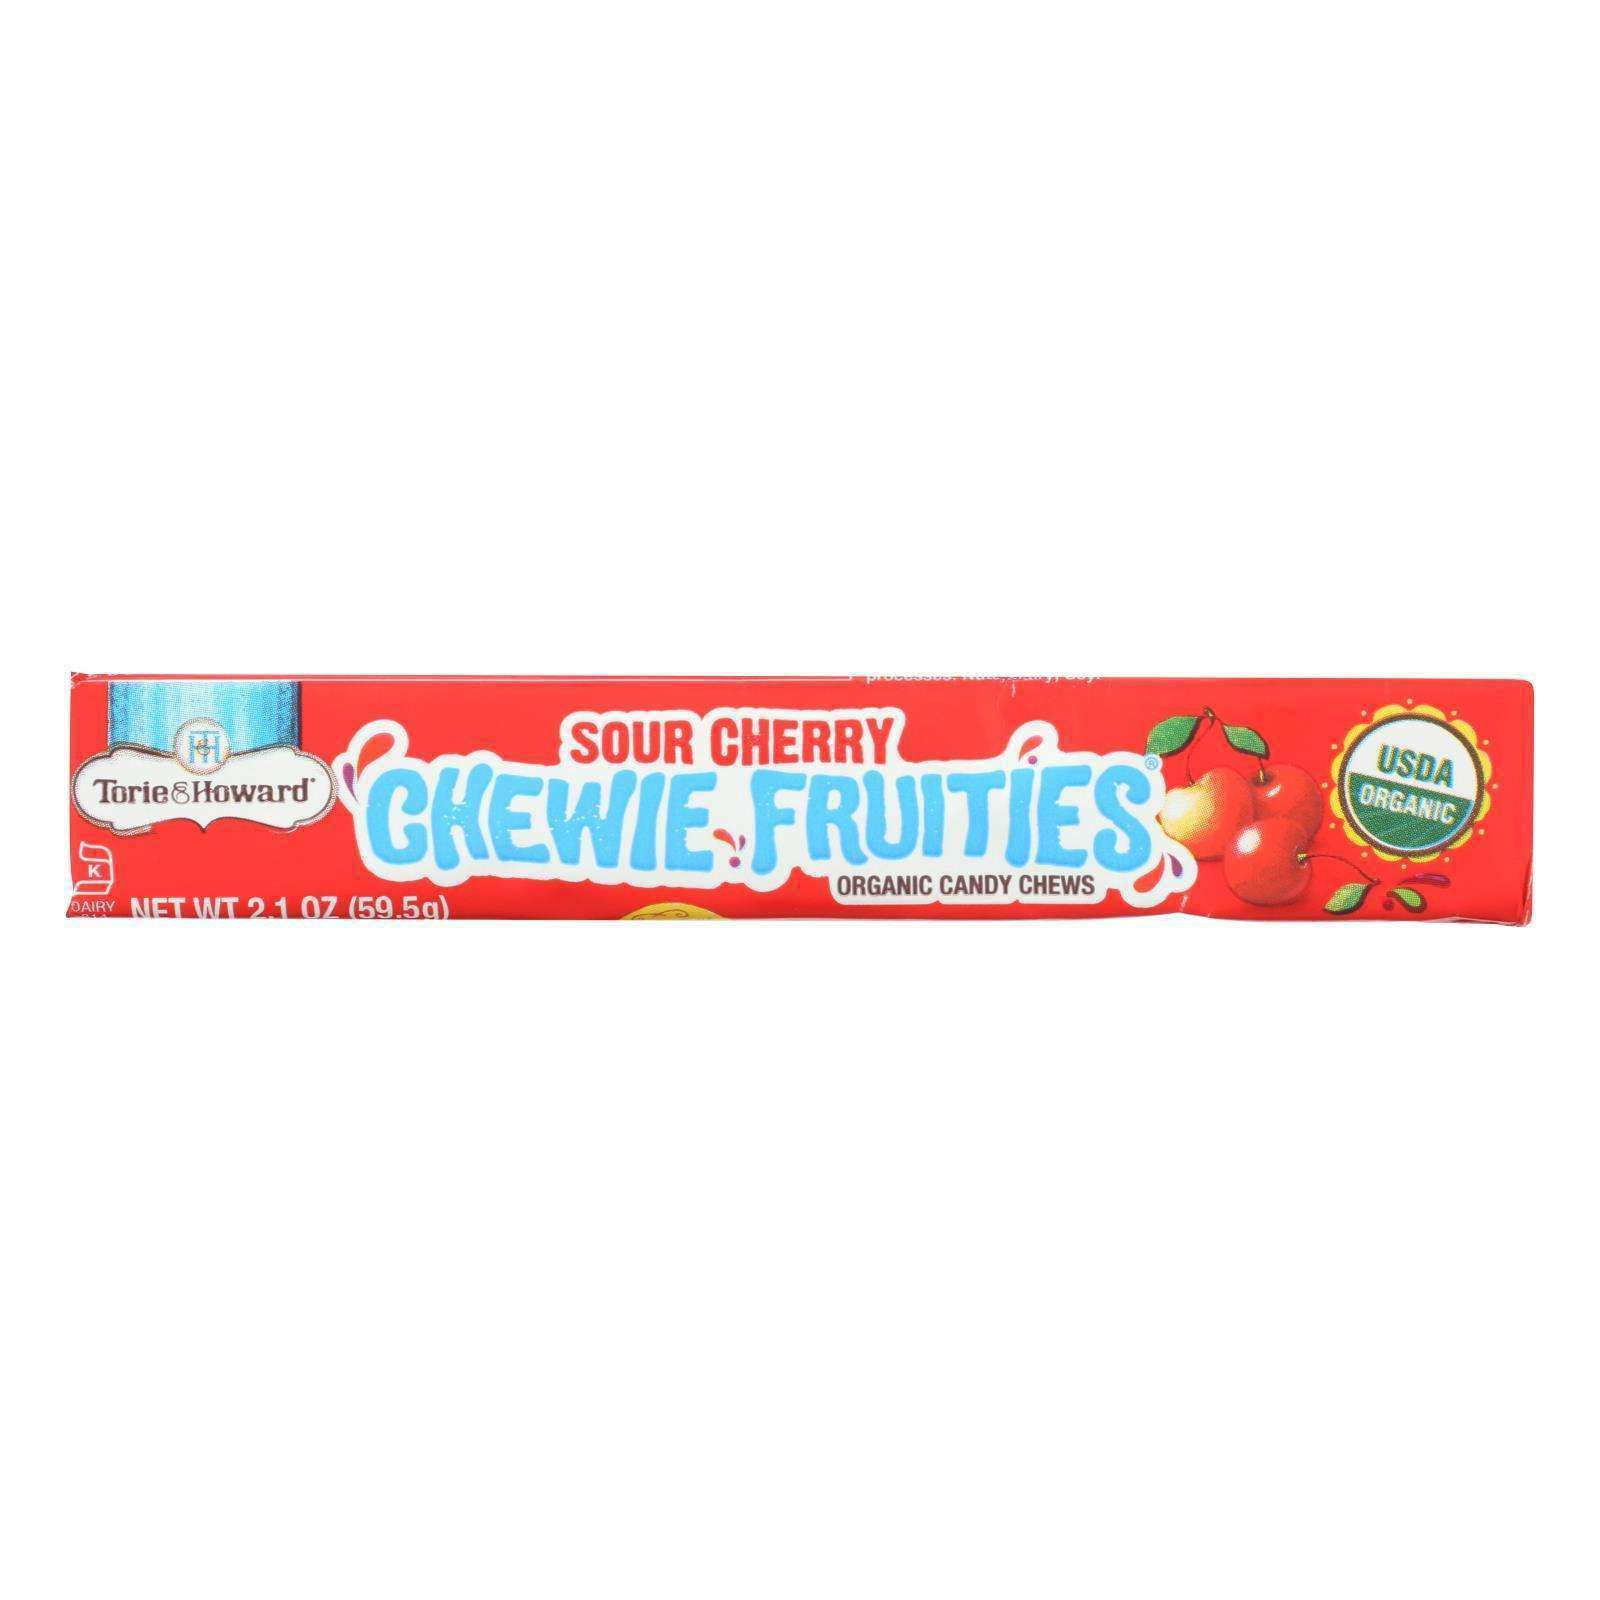 Torie And Howard - Chewy Fruities Organic Candy Chews - Sour Cherry - Case Of 18 - 2.1 Oz. - BeeGreen